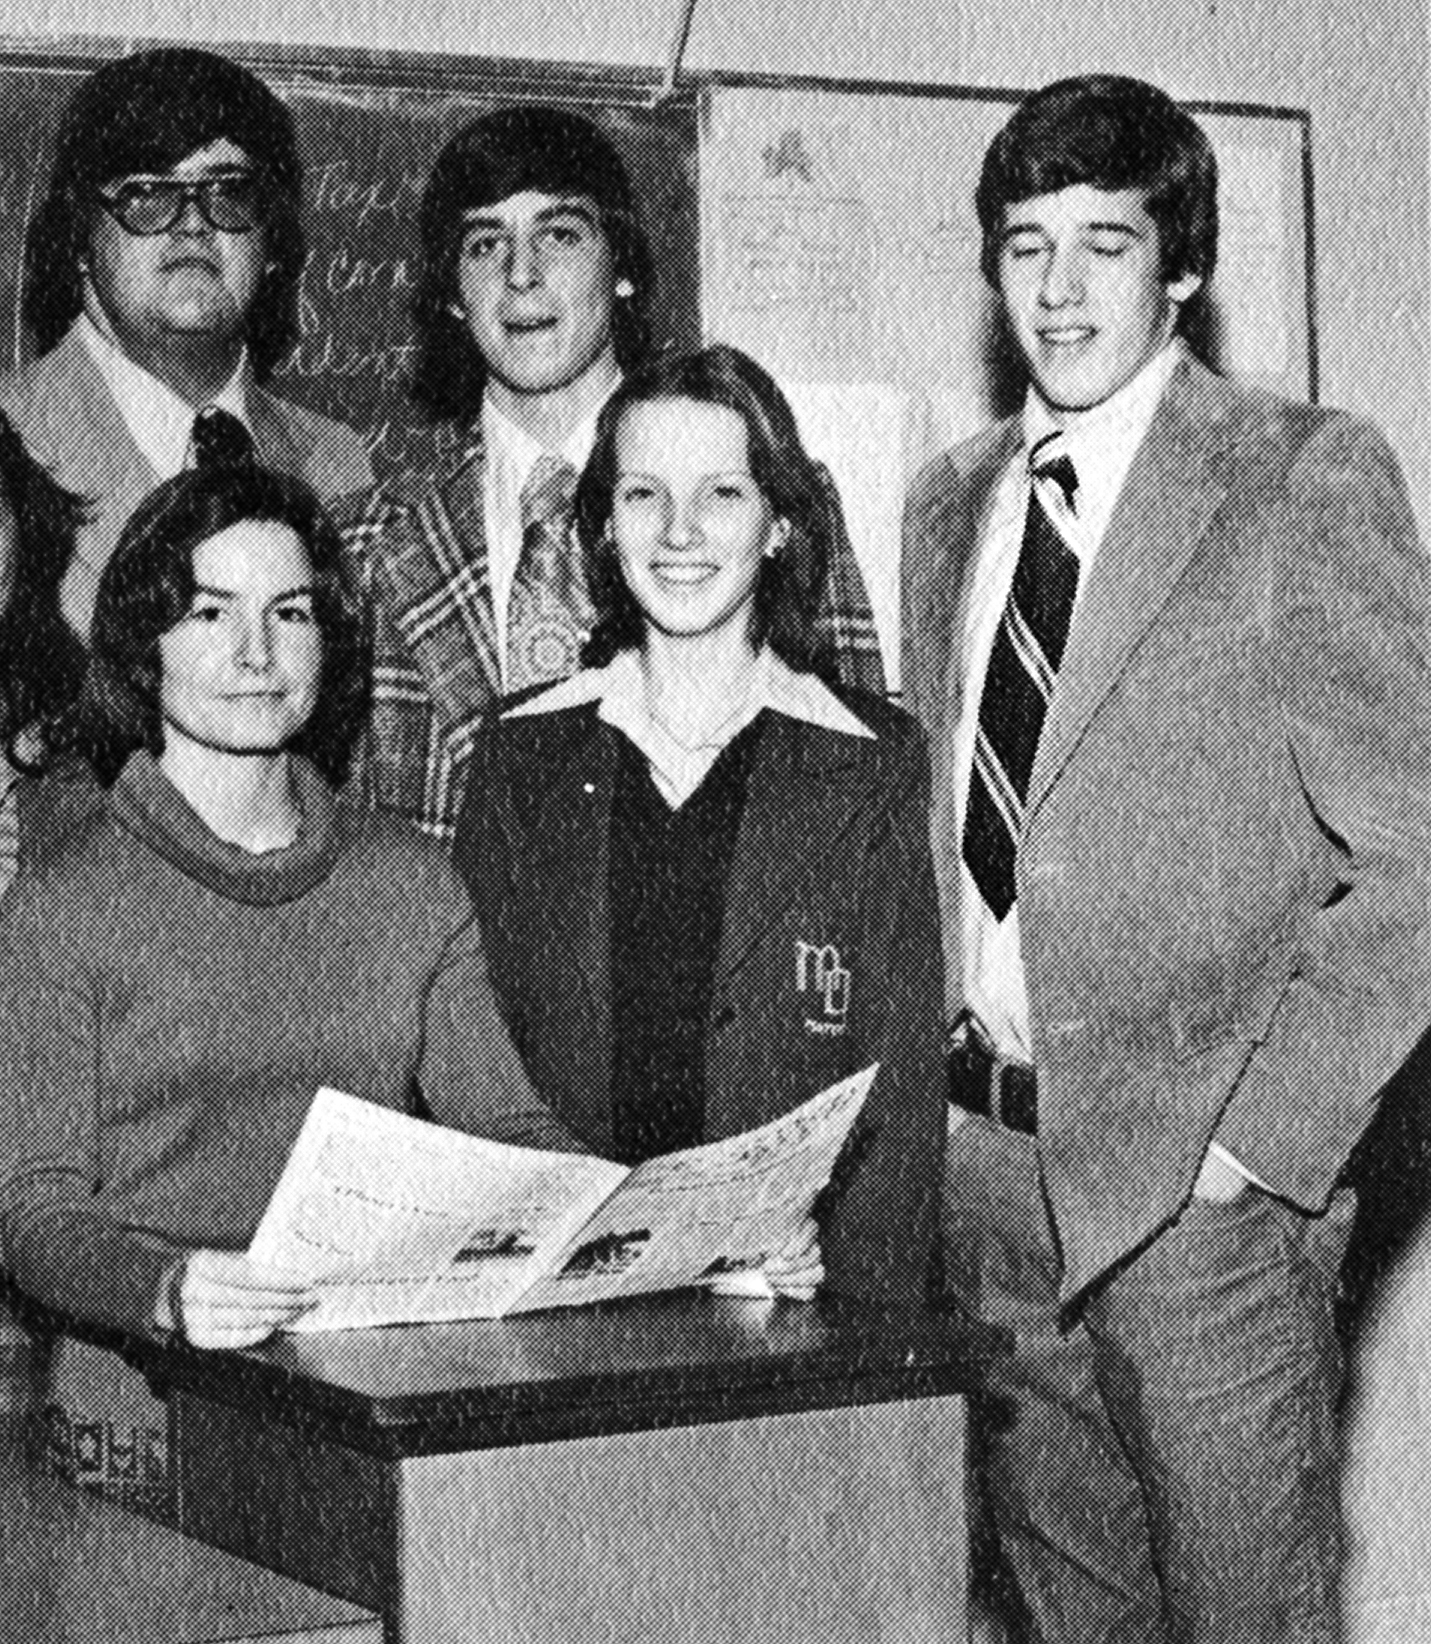 Brian Williams was the Editorial Editor for his  school newspaper seen here on the far right during his Senior Year at                                Mater Dei High School in New Monmouth, N.J. in 1977.